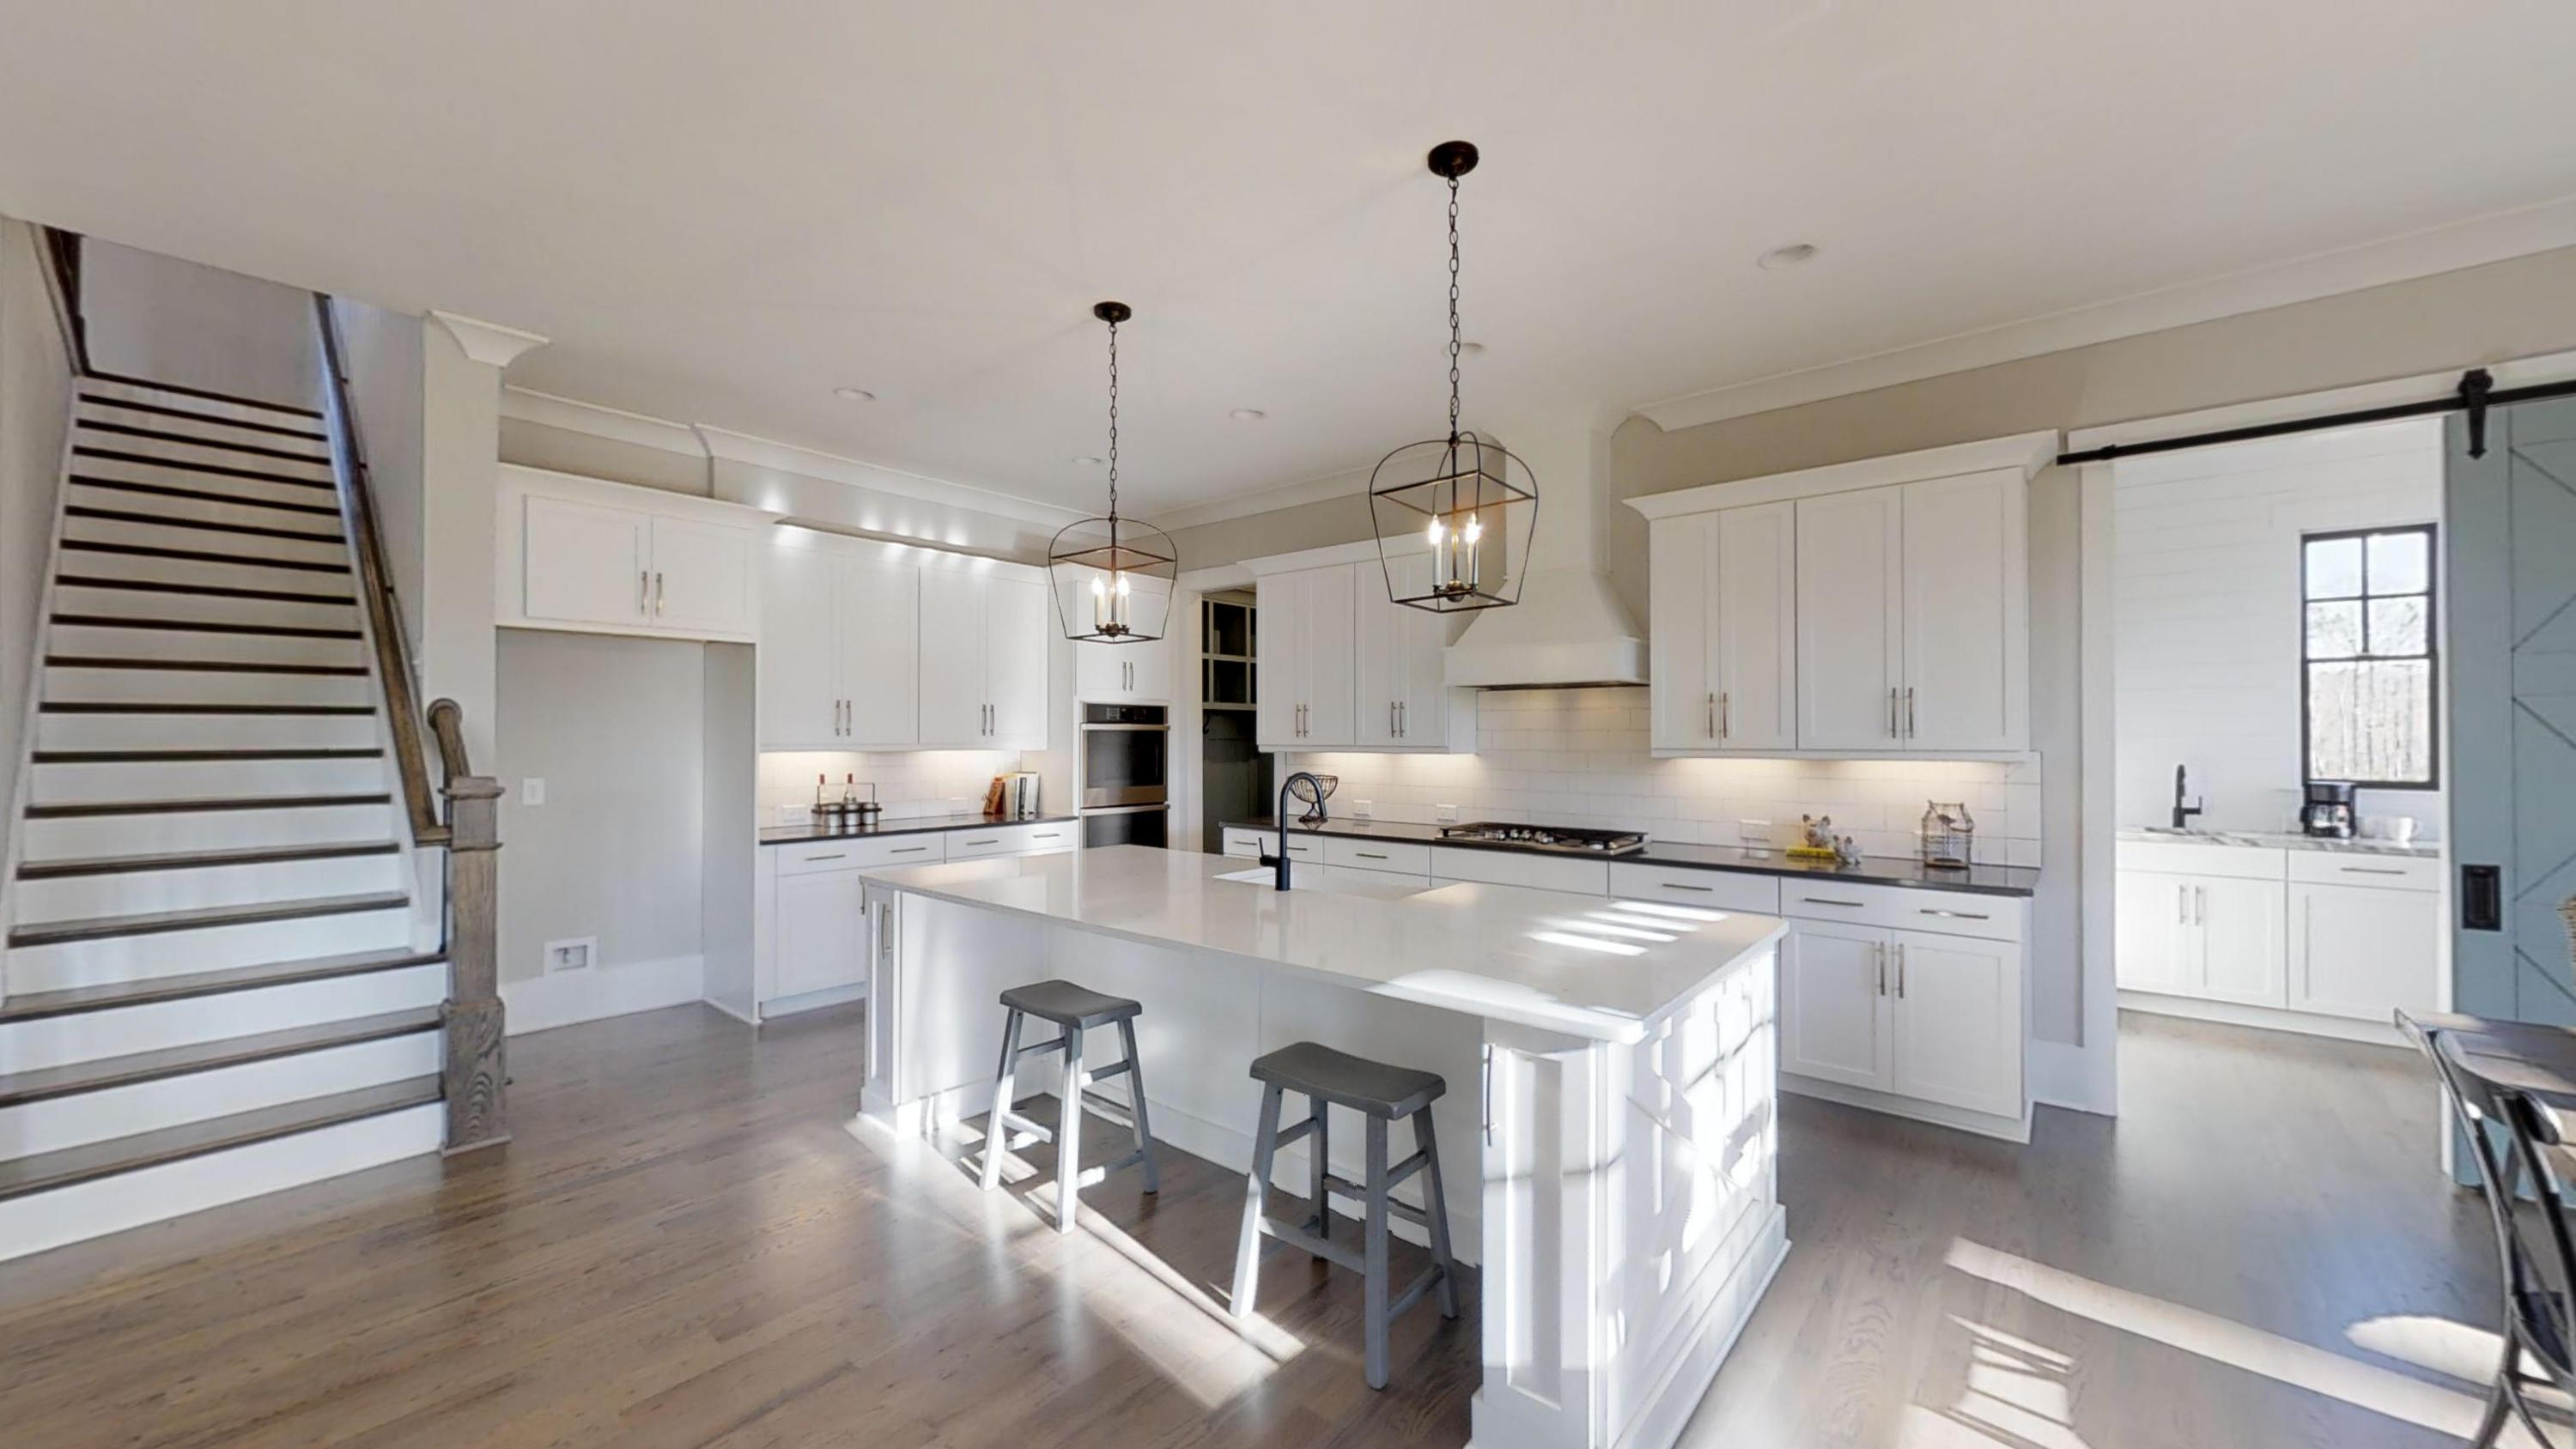 Kitchen featured in The Brooks A By Bercher Homes in Atlanta, GA